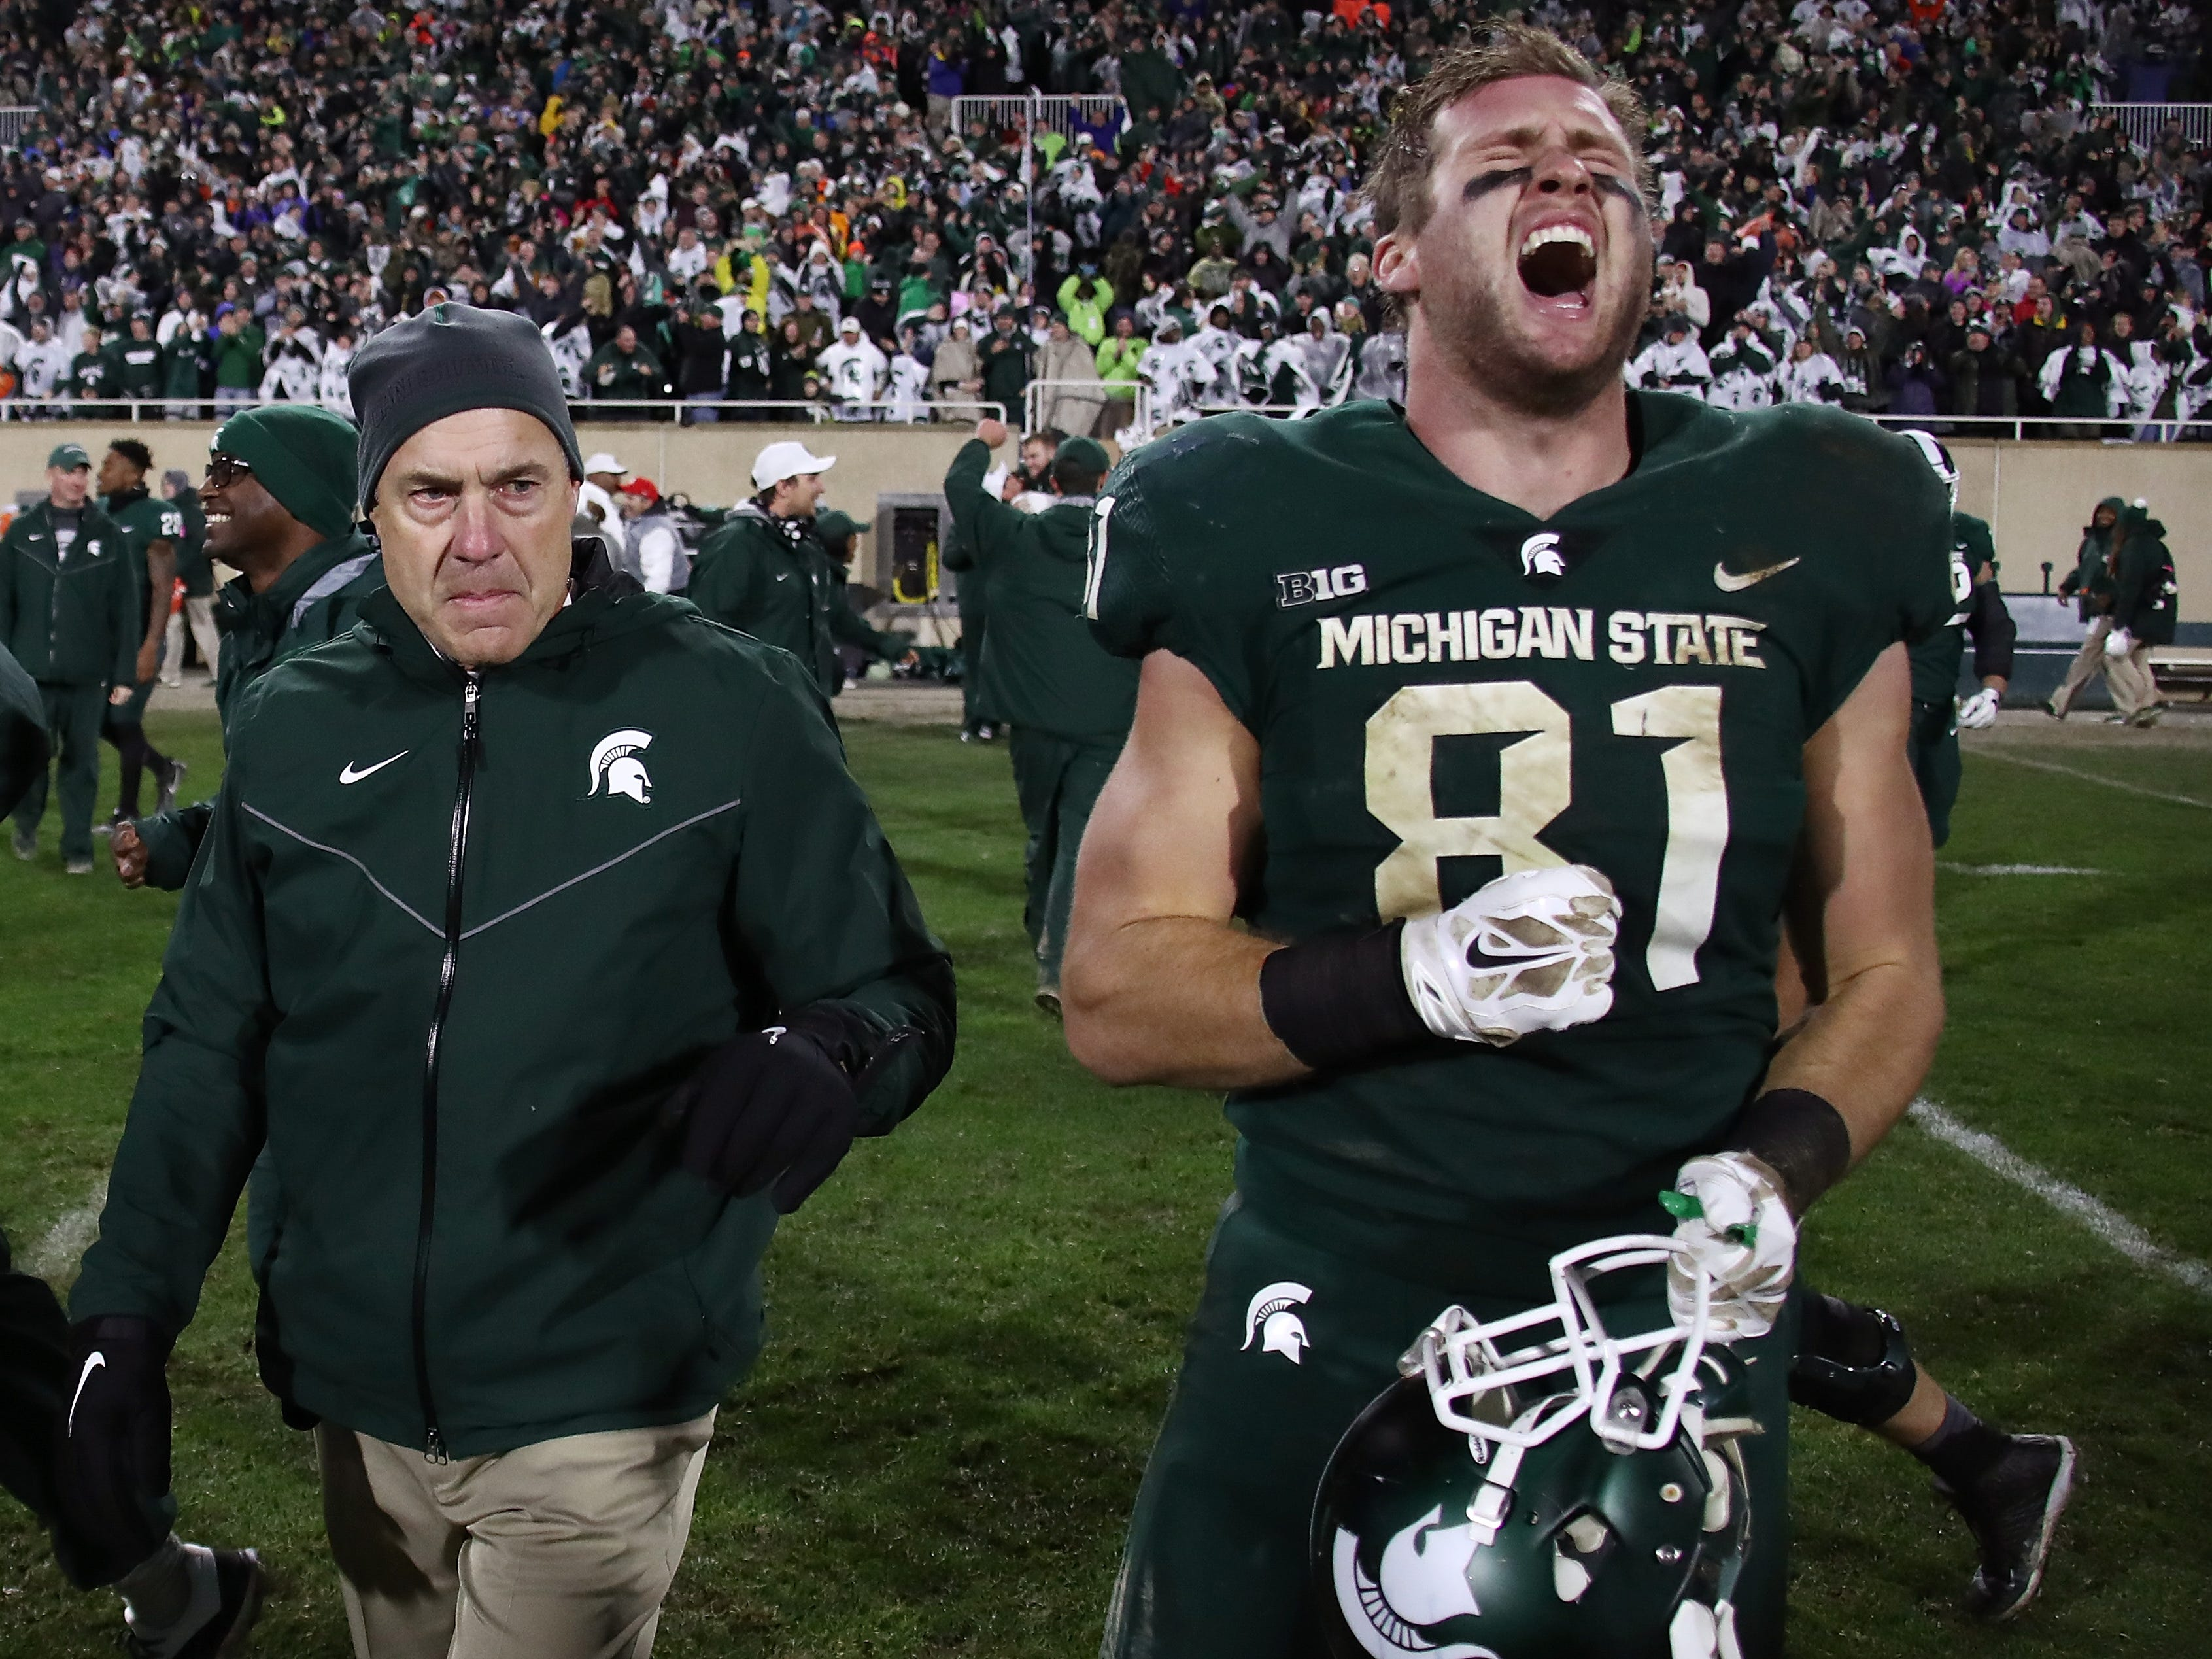 Nov. 4, 2017: No. 24 Michigan State 27, No. 7 Penn State 24: Matt Sokol celebrates the victory, played in terrible weather, as Mark Dantonio walks by.